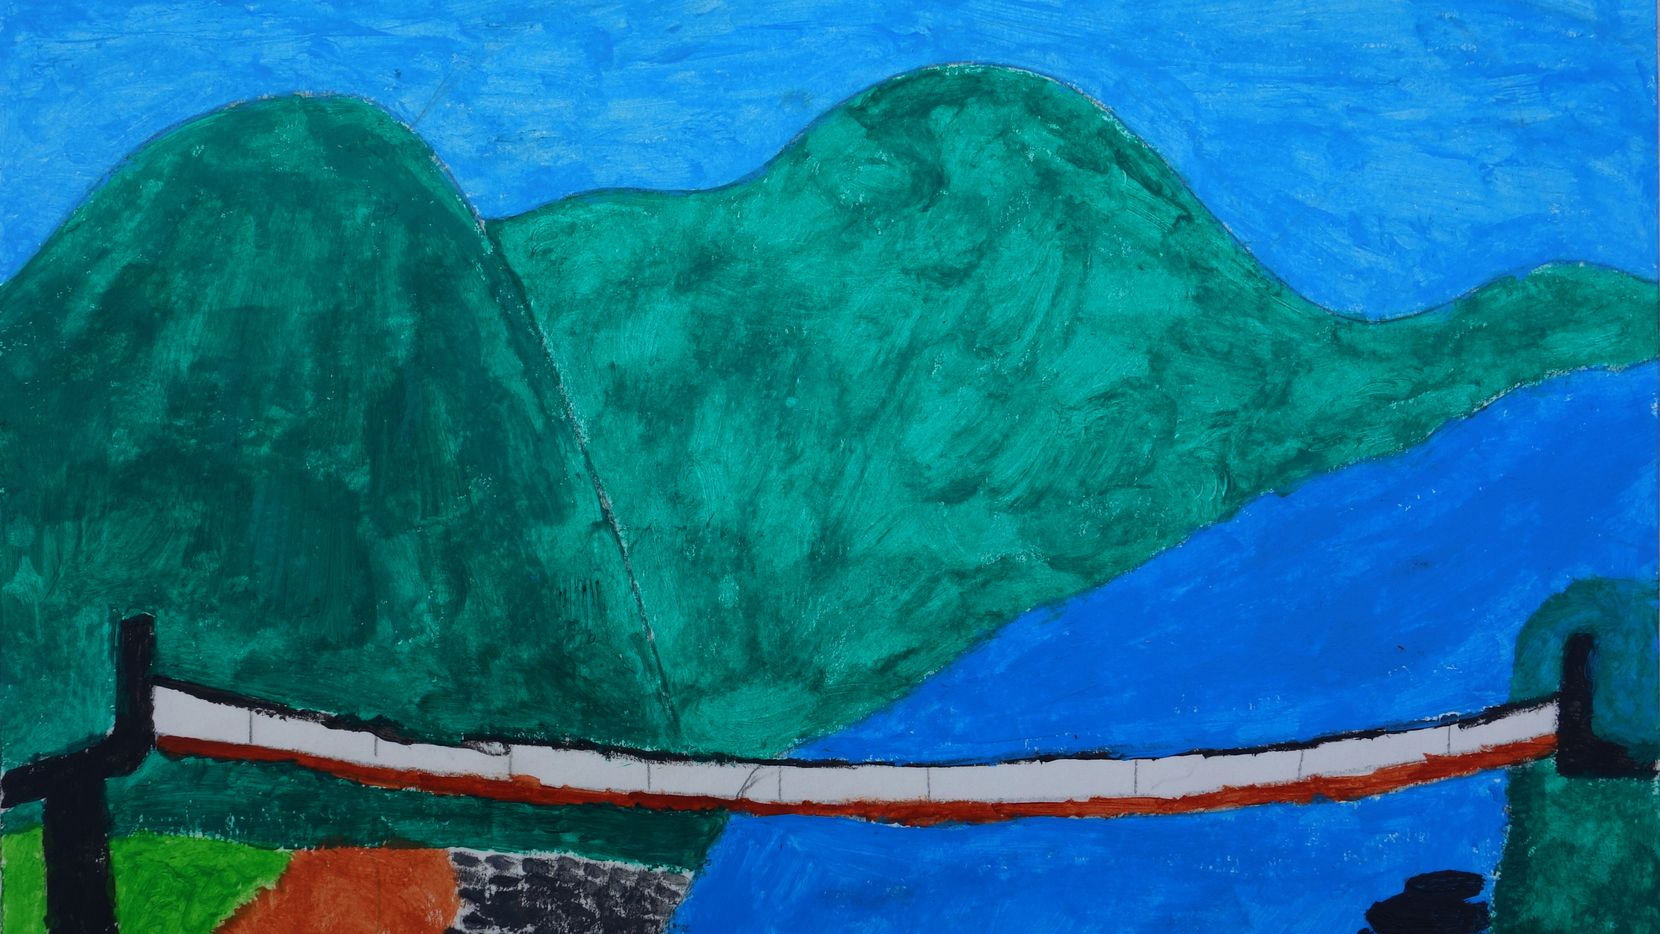 The River, 2010 by Molina High School student Alexander Lopez.